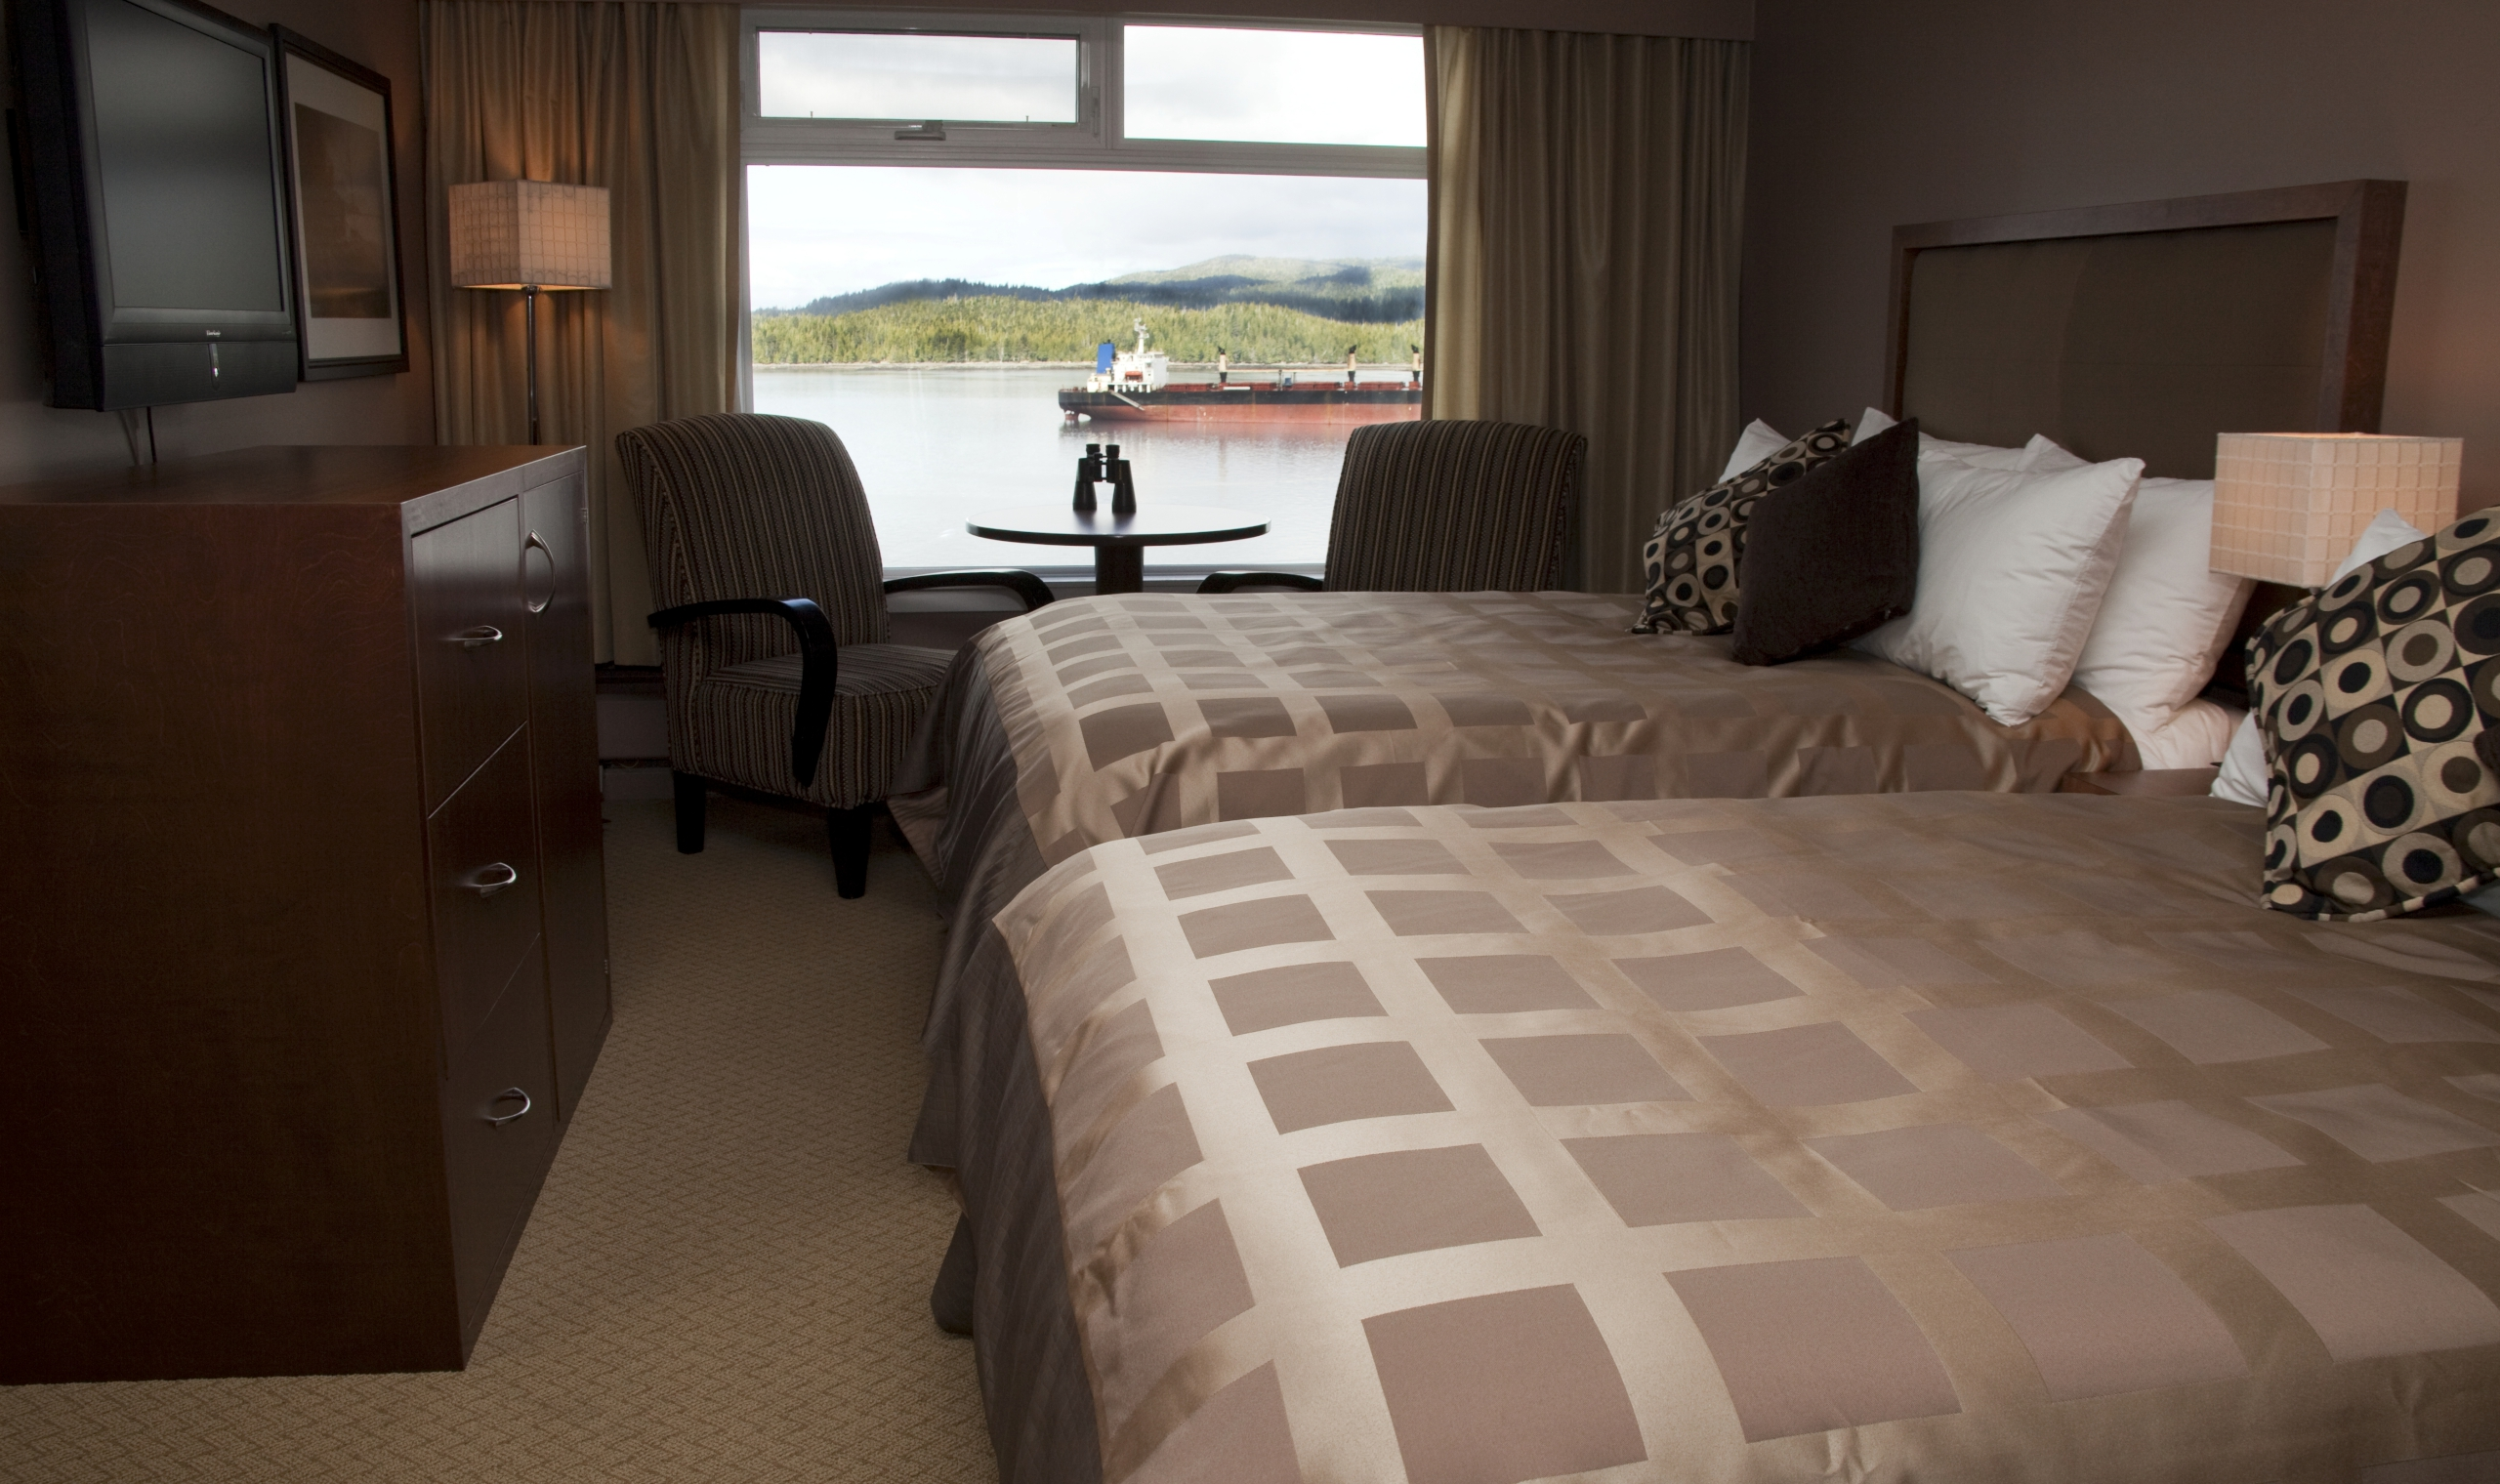 prince rupert chat rooms Welcome to our bed and breakfast in prince rupert, bc canada special offers: contact us directly by phone or email for our special rates and personalized deals plus receive a discount off one of our favorite local restaurants.